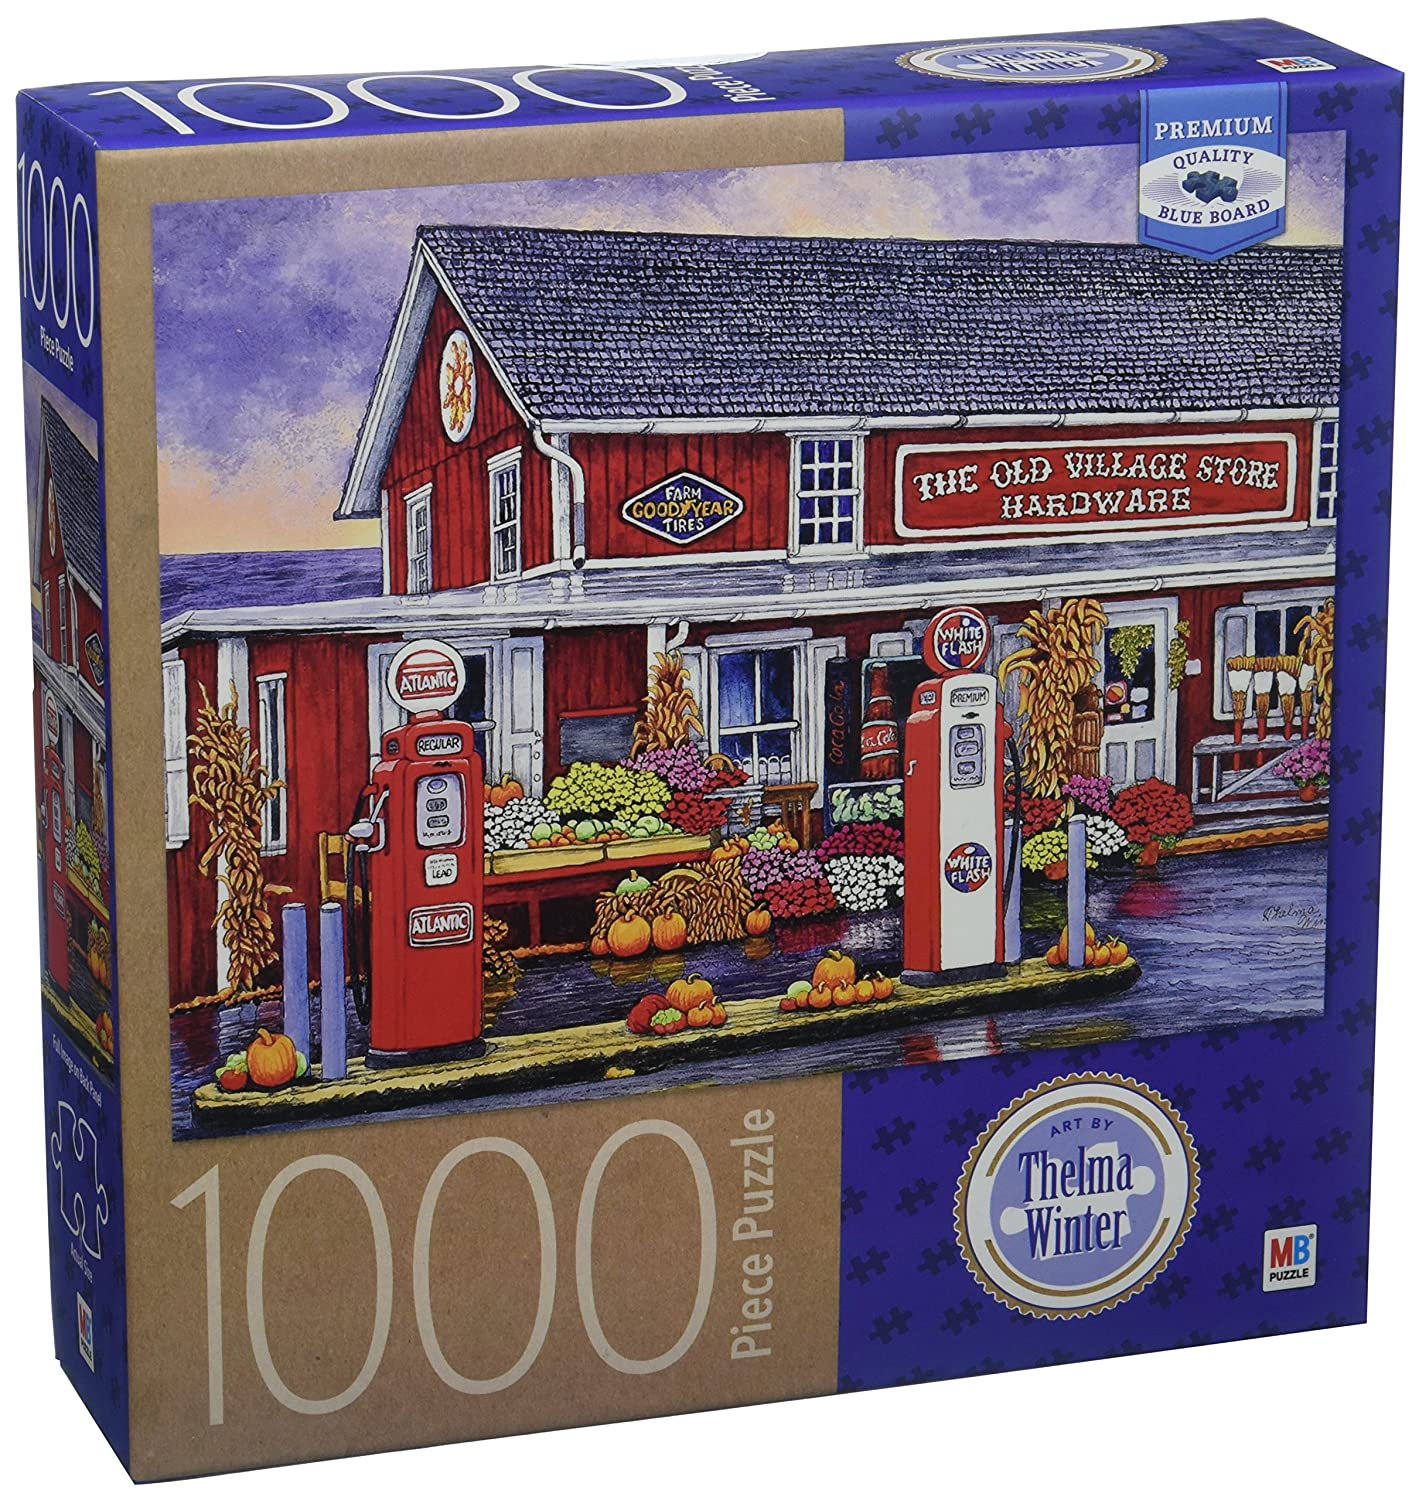 6040851 1000 Piece Cardinal Industries  Thelma Winter Old Village Bird-in-Hand PA Hardware Store Puzzle